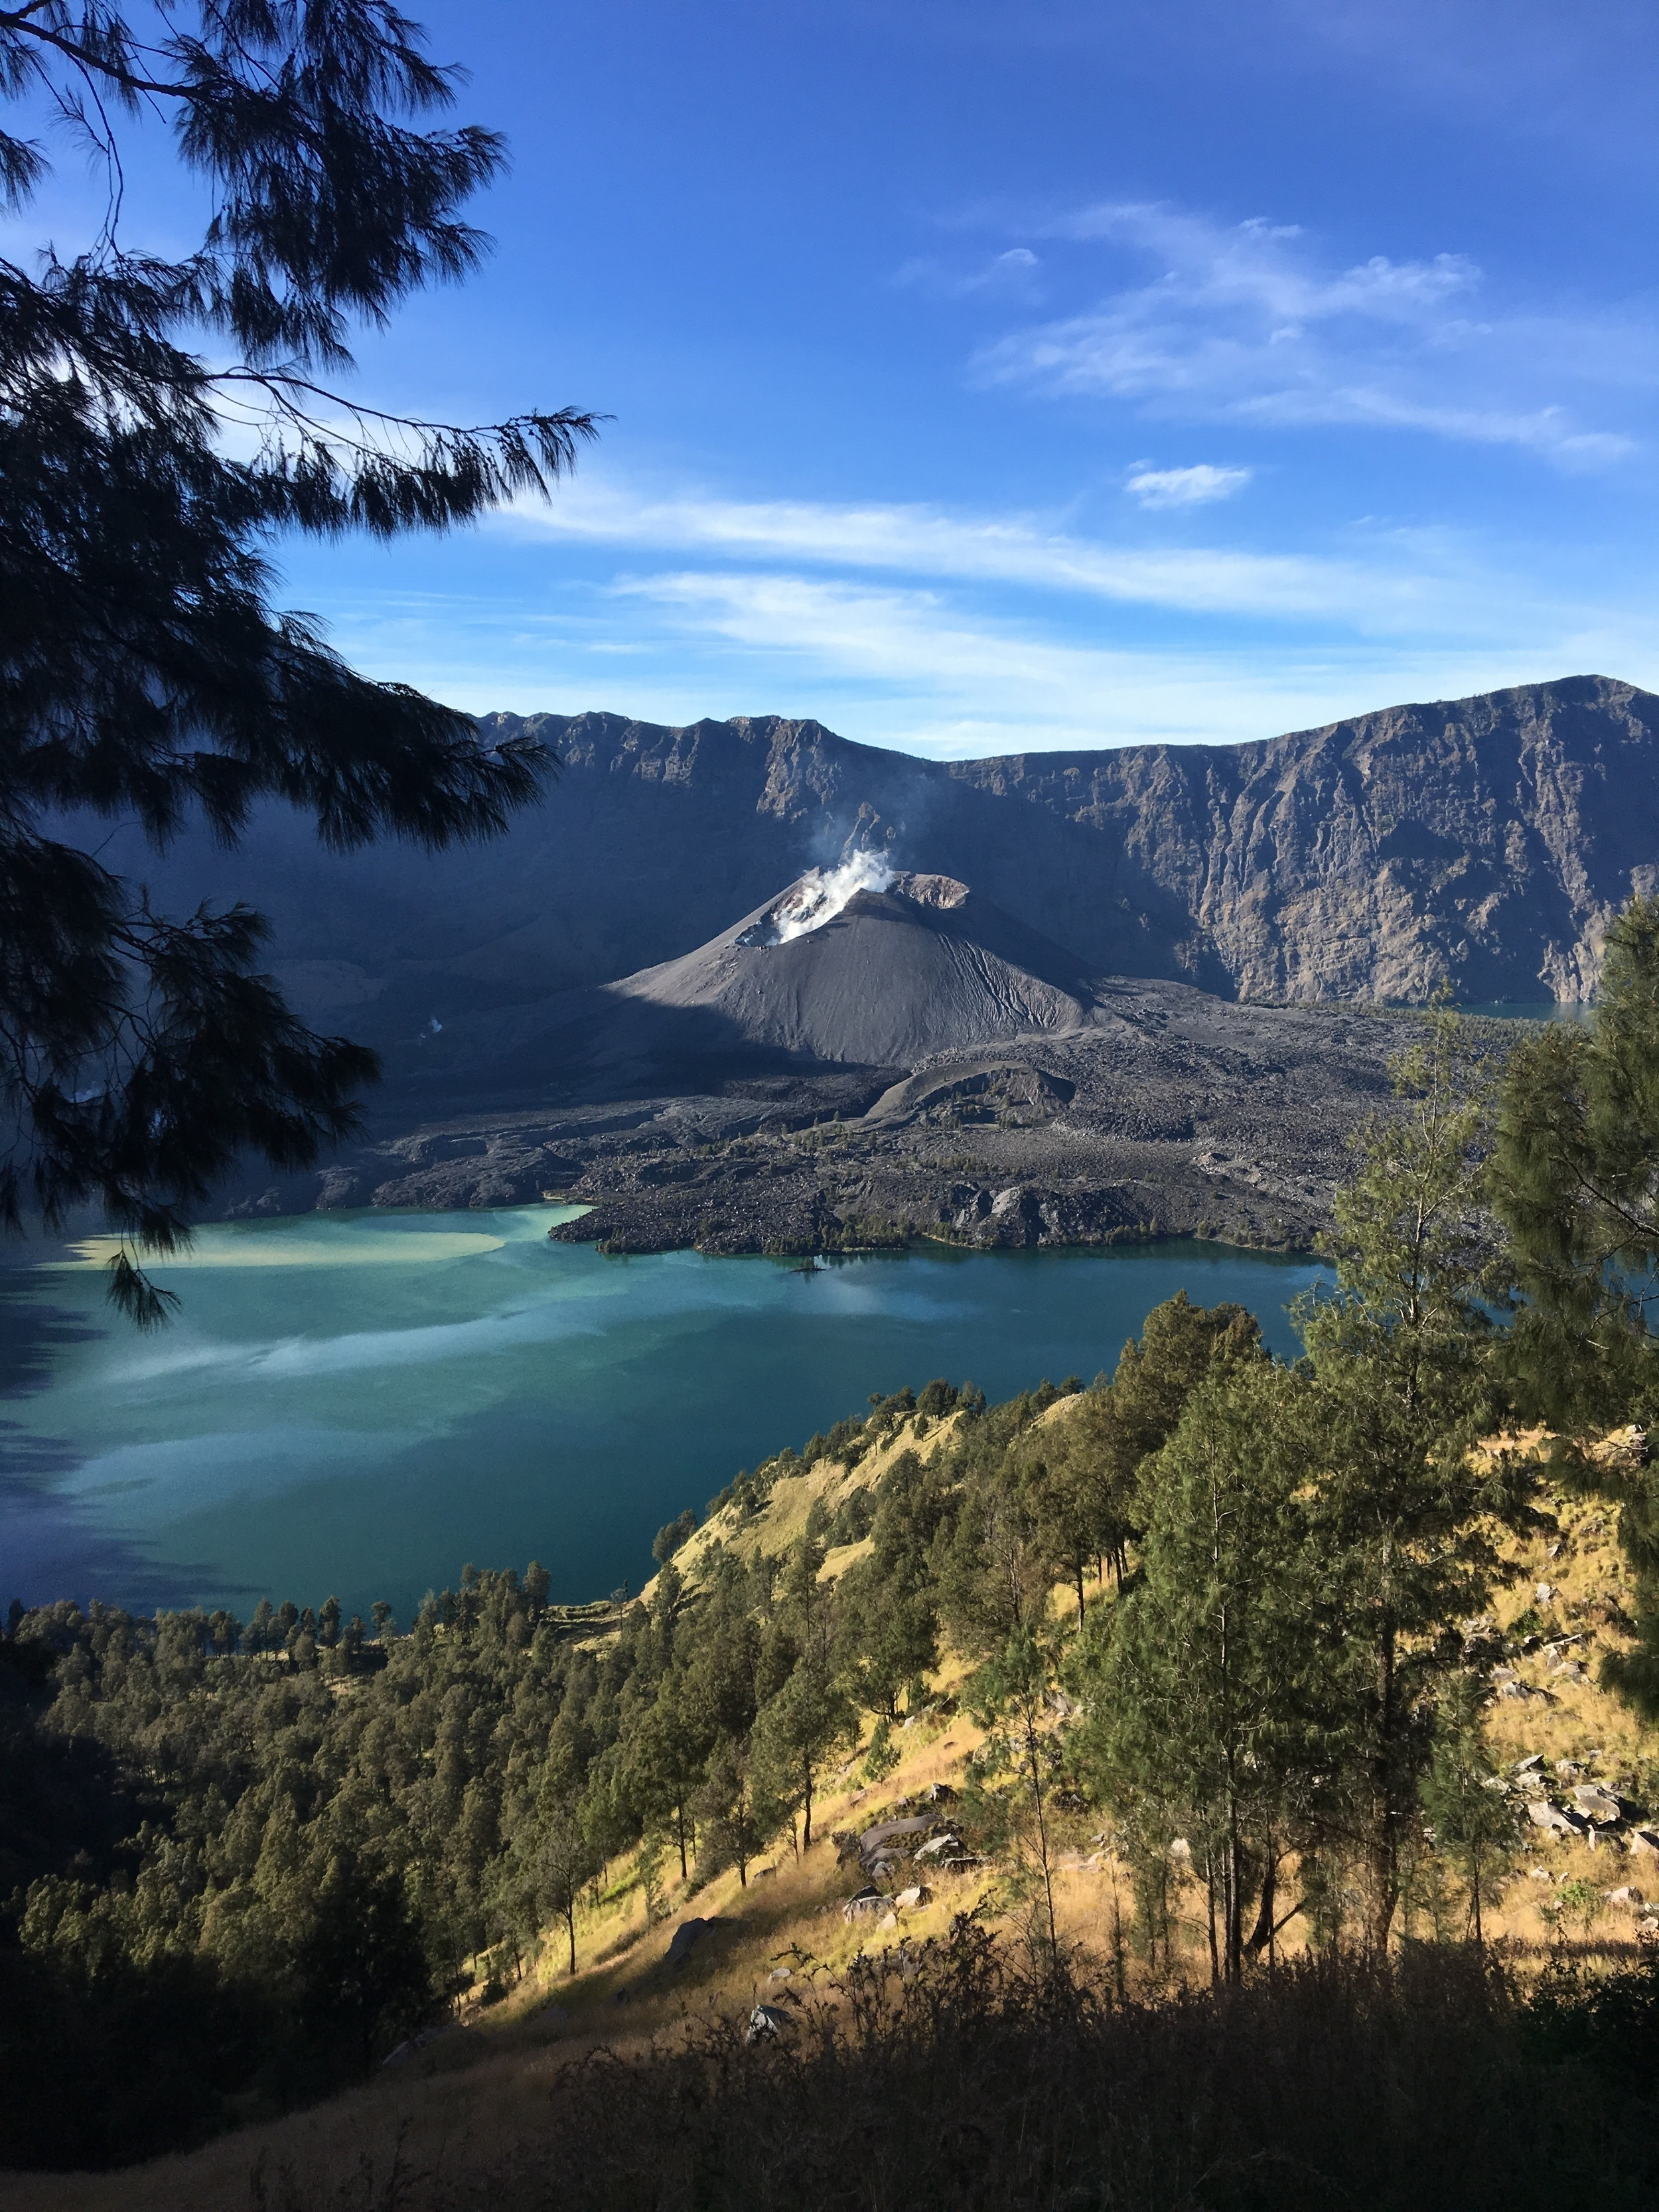 The active volcano in the Rinjani crater